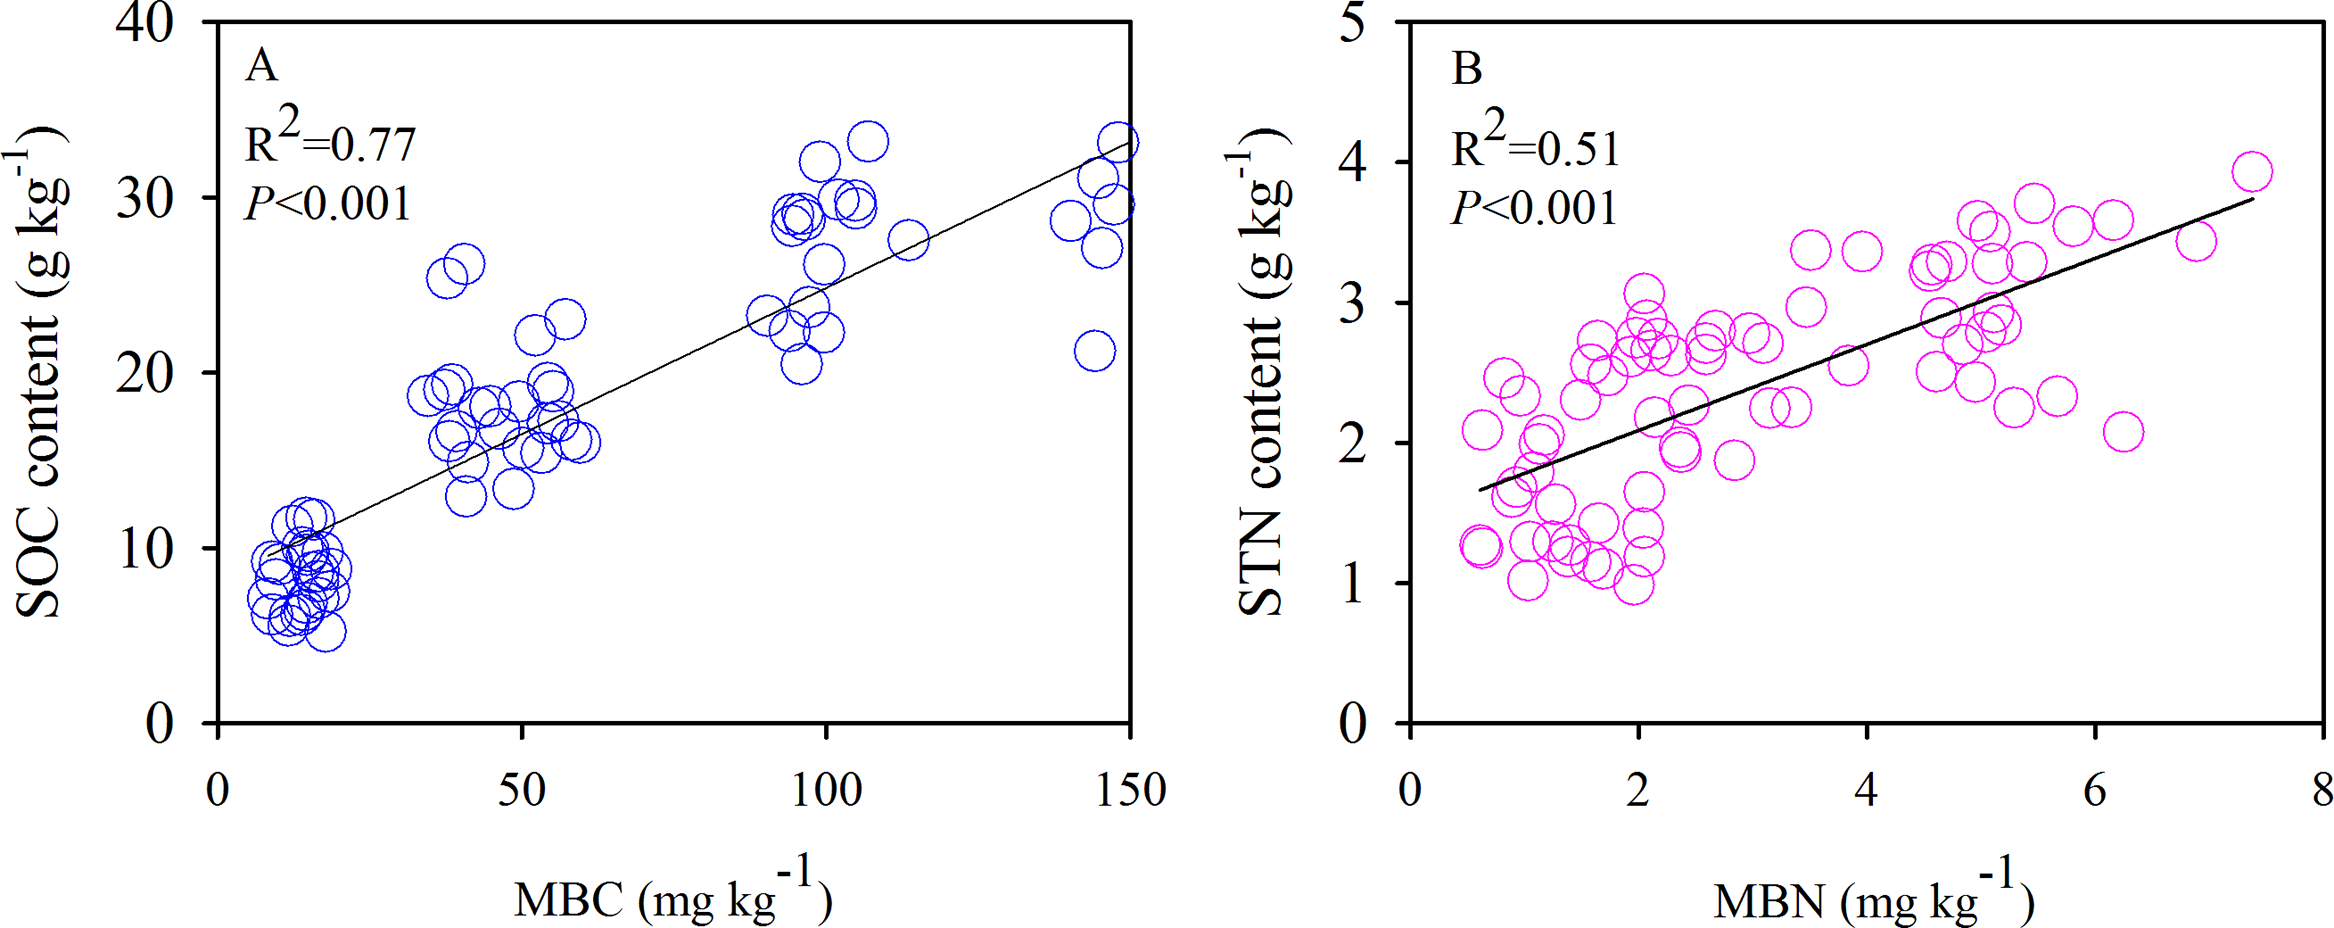 Effects of species-dominated patches on soil organic carbon and